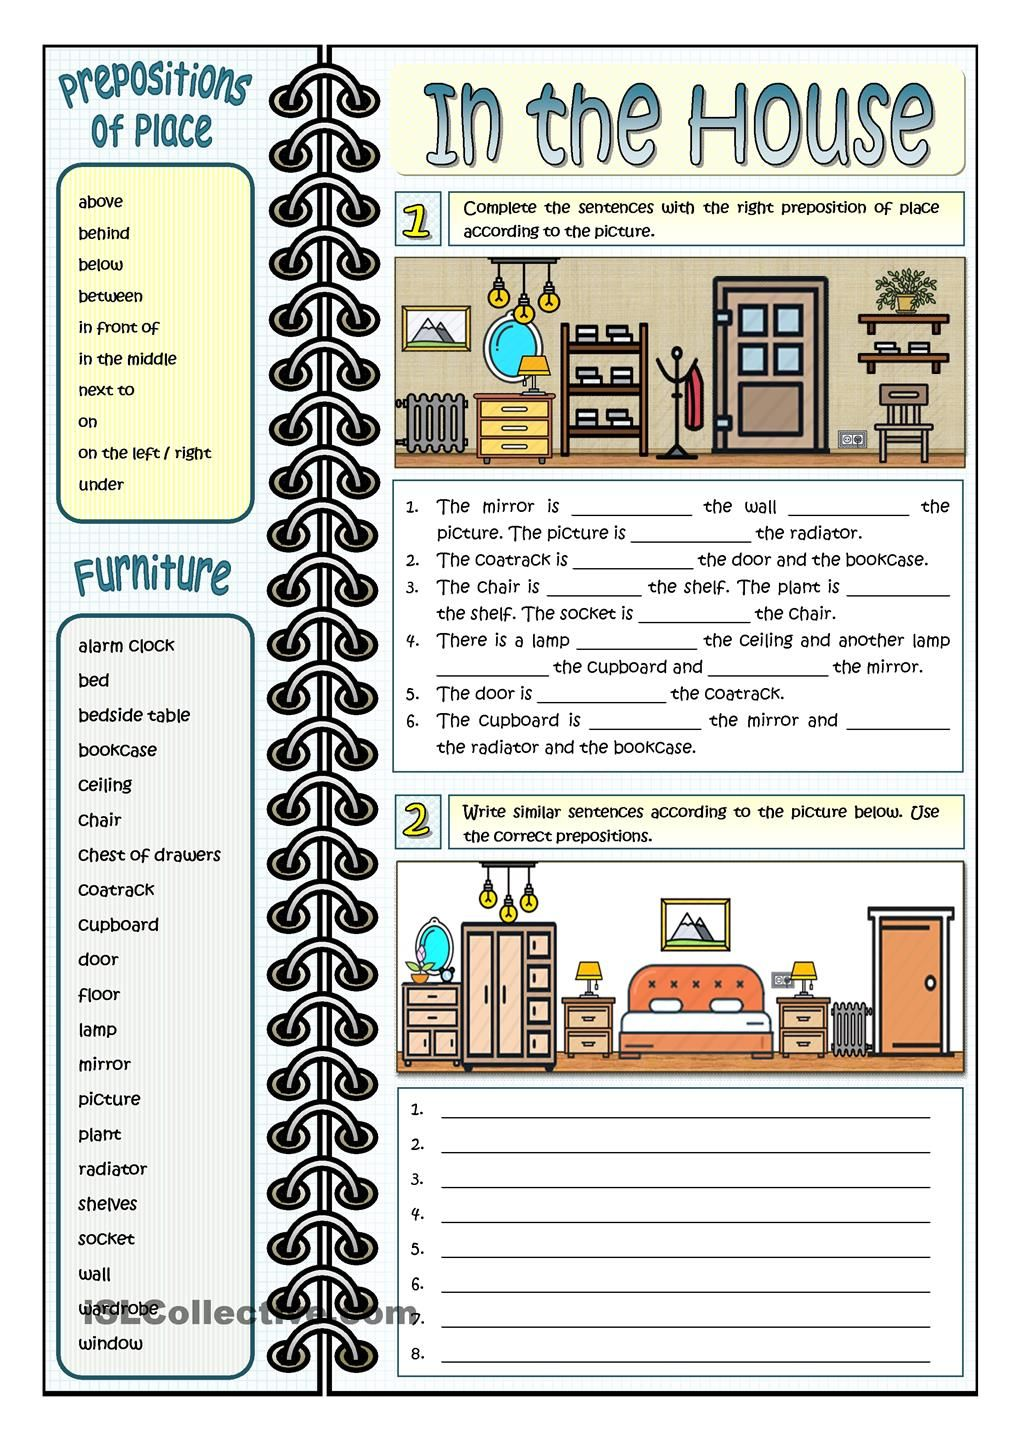 medium resolution of IN THE HOUSE - PREPOSITIONS OF PLACE   Preposition worksheets